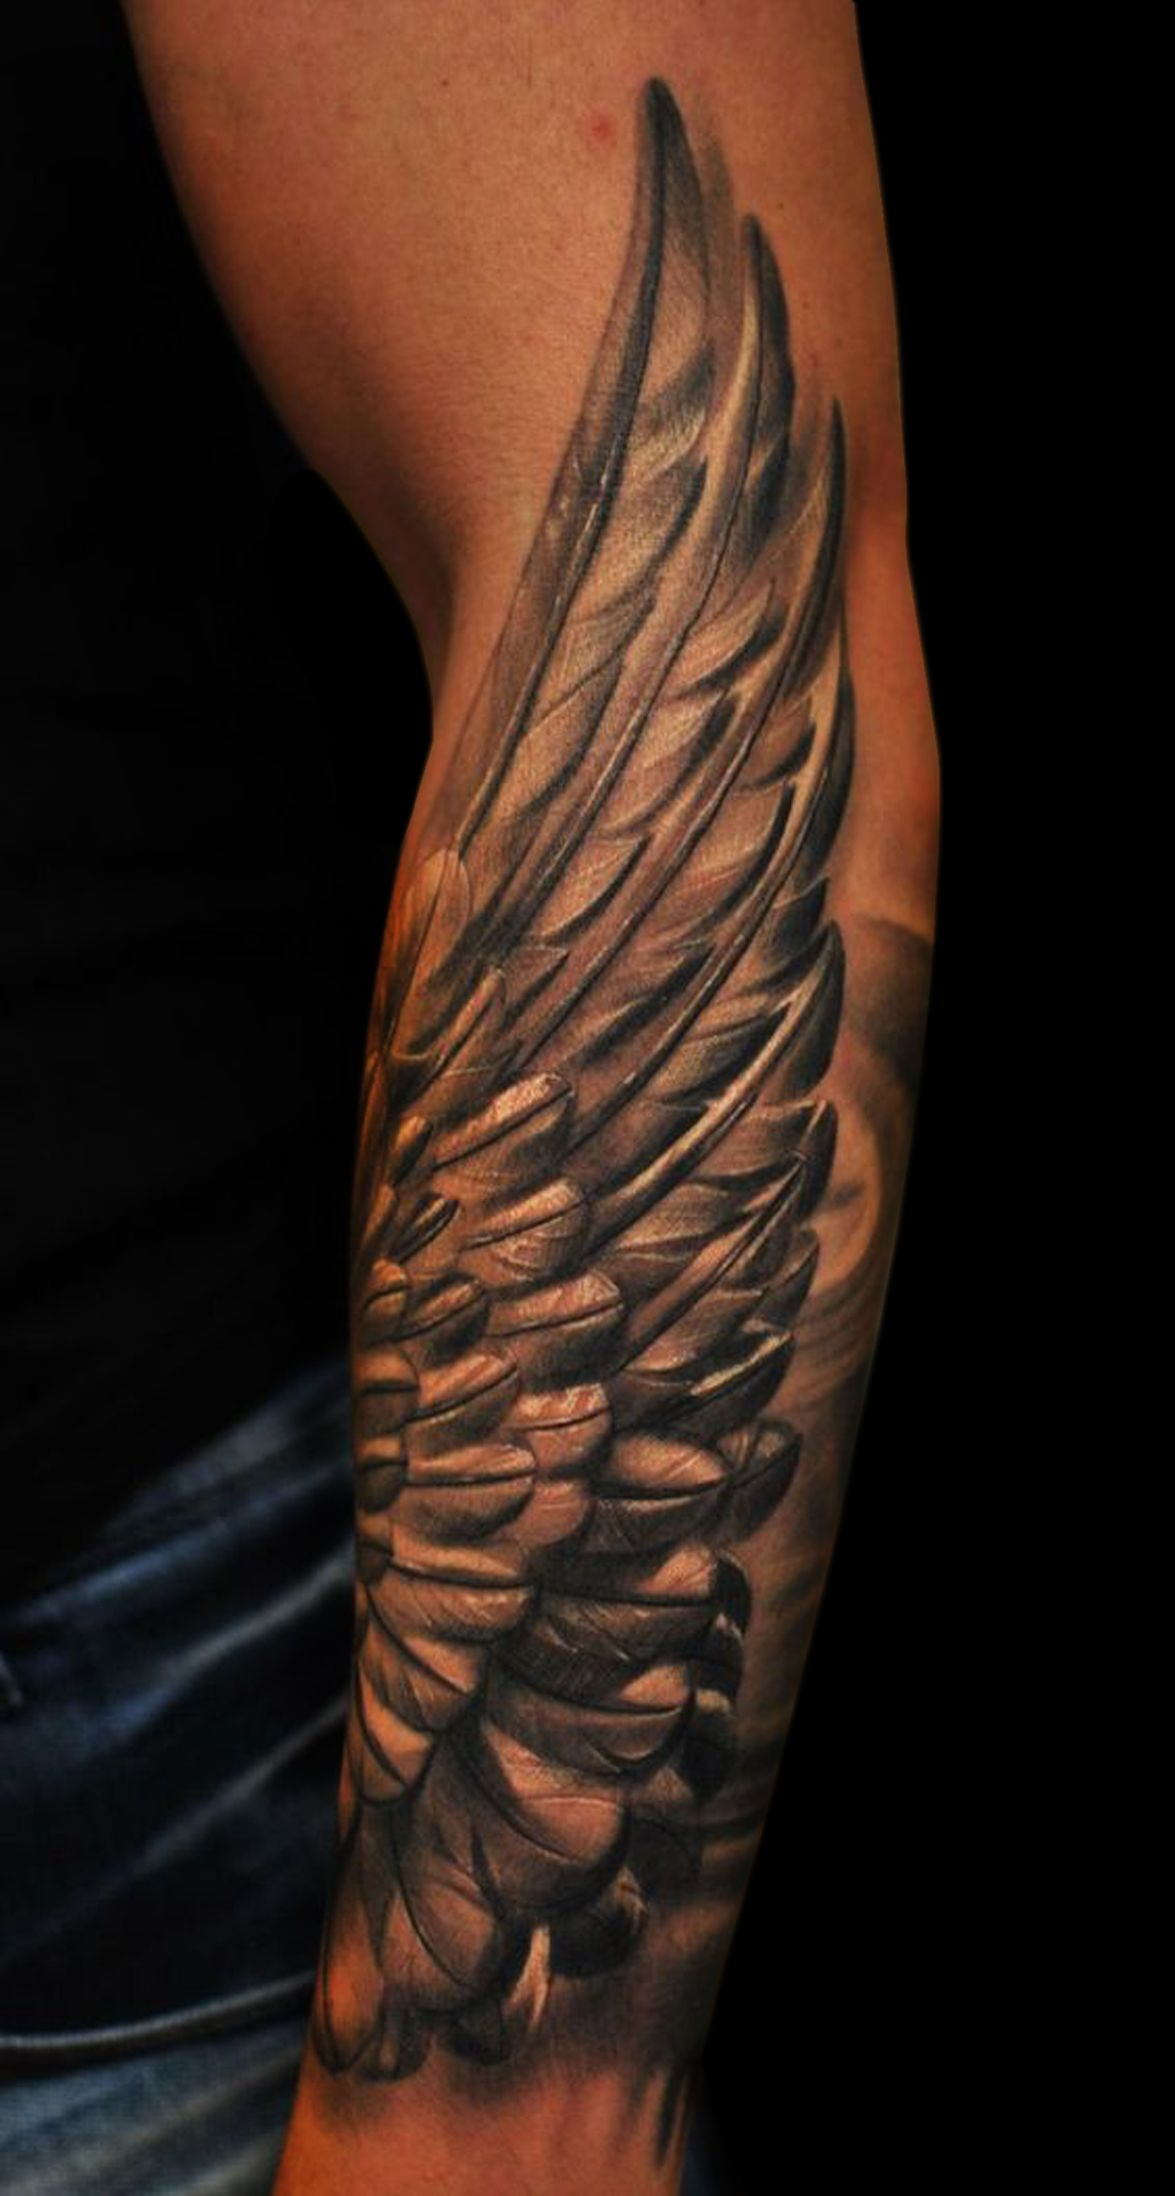 Pin by Gherghe Florin on Cruci | Pinterest | Tattoo, Angel ...